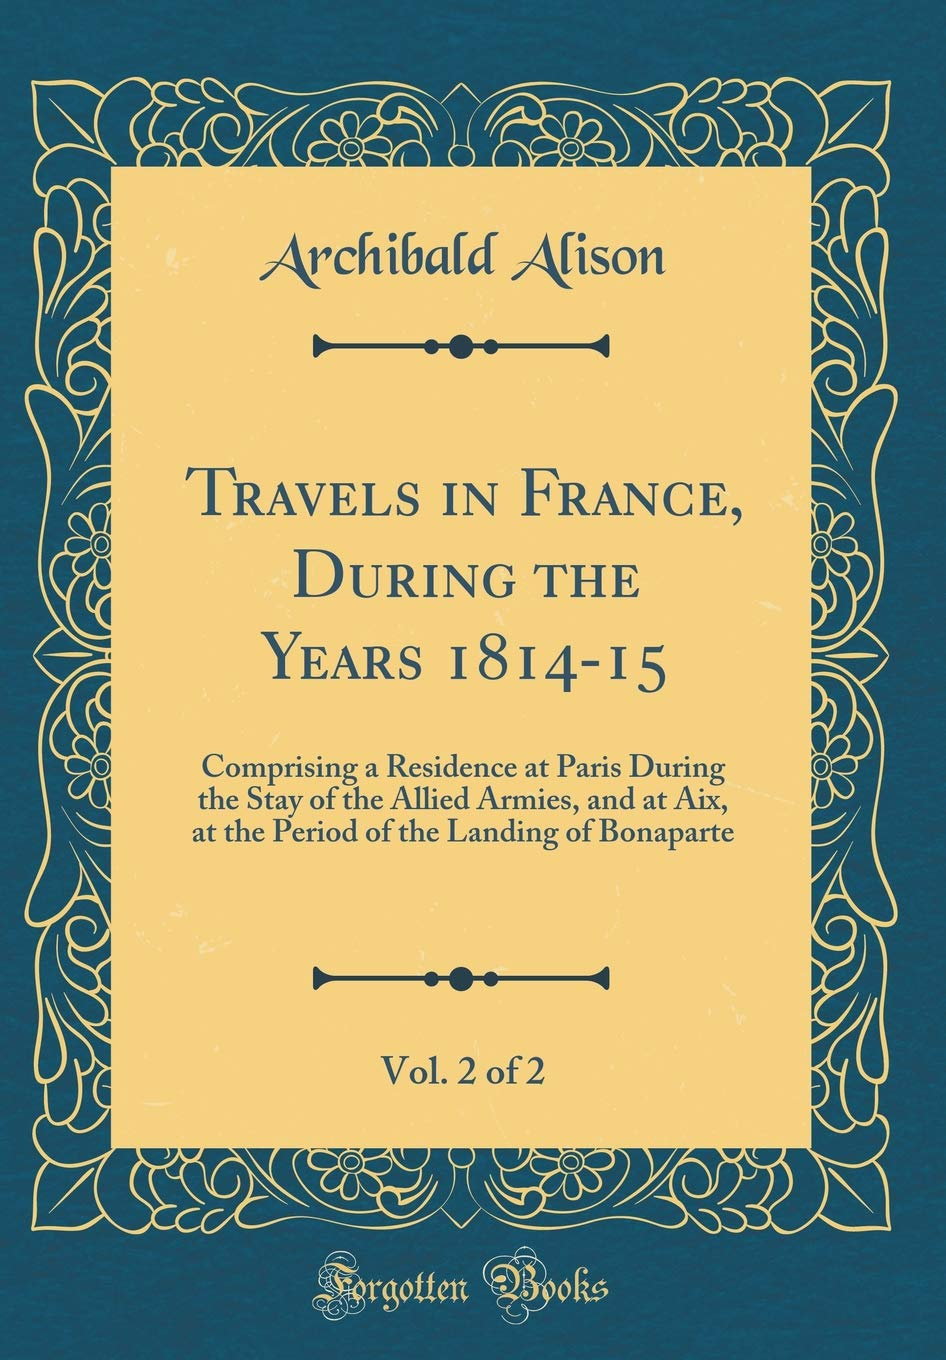 Travels in France, During the Years 1814-15, Vol. 2 of 2: Comprising a Residence at Paris During the Stay of the Allied Armies, and at Aix, at the Period of the Landing of Bonaparte (Classic Reprint) pdf